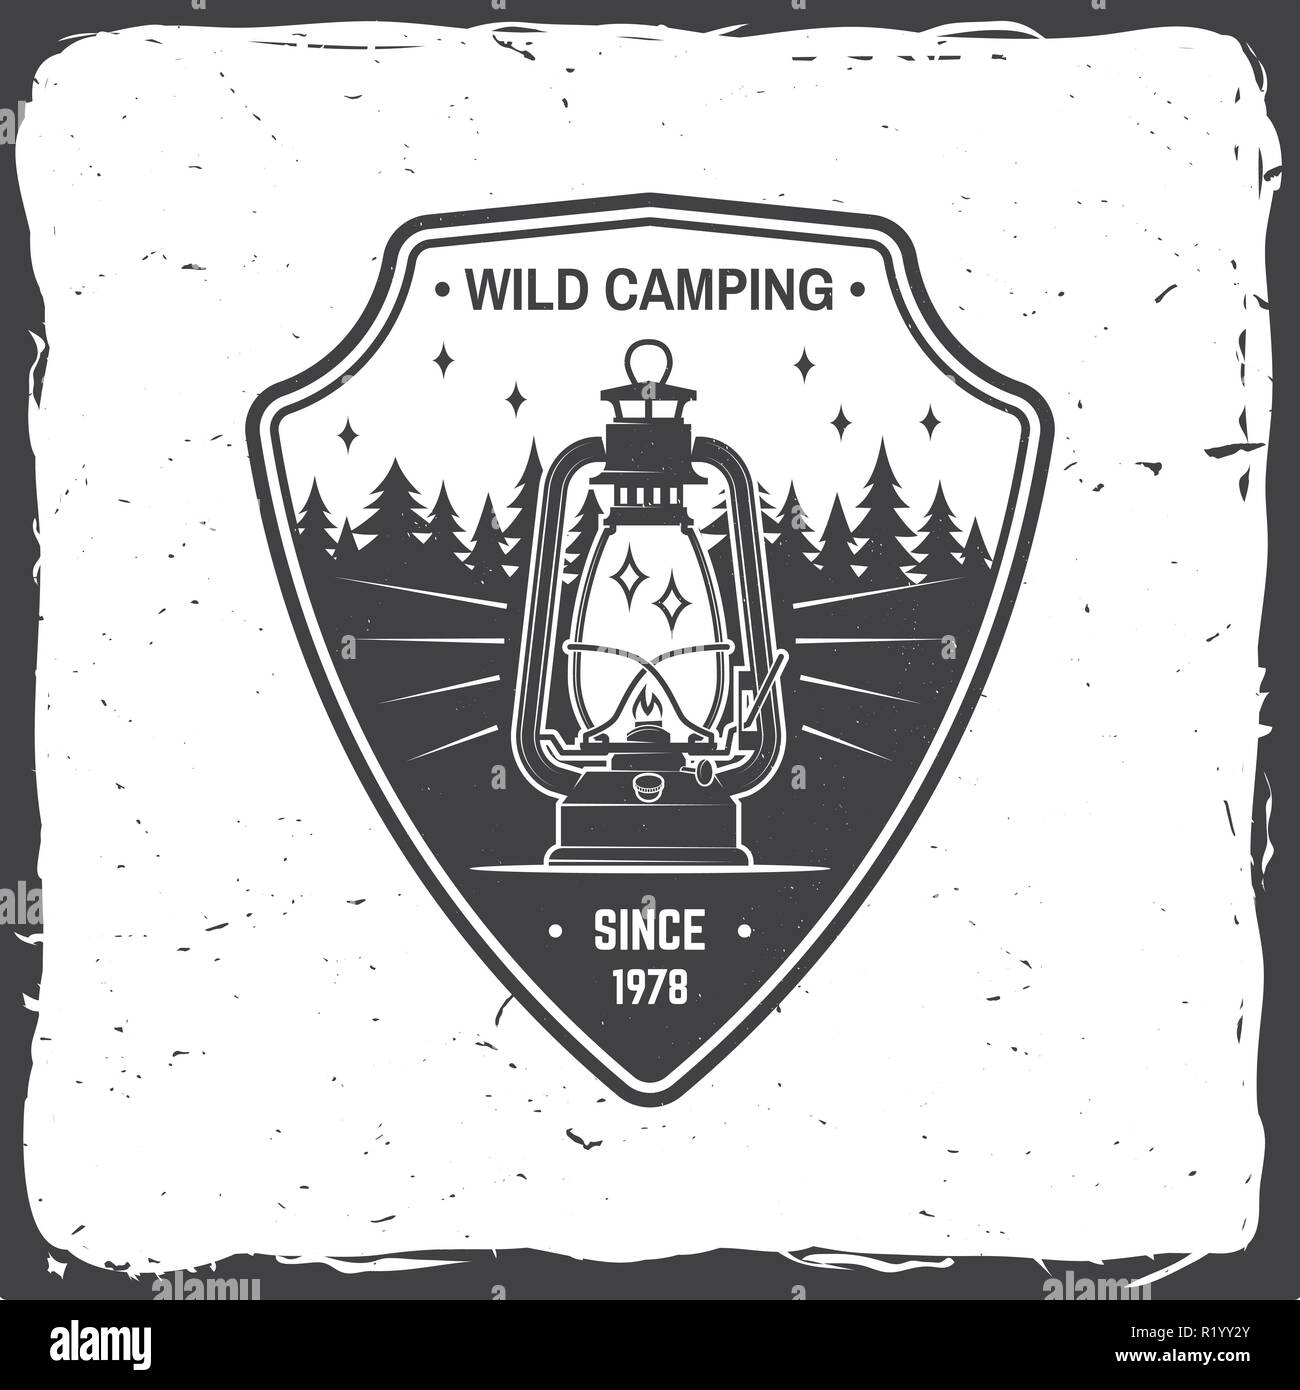 Wild camping. Vector illustration. Concept for shirt or logo, print, stamp or tee. Vintage typography design with camp lantern and forest silhouette. Outdoor adventure symbol - Stock Vector